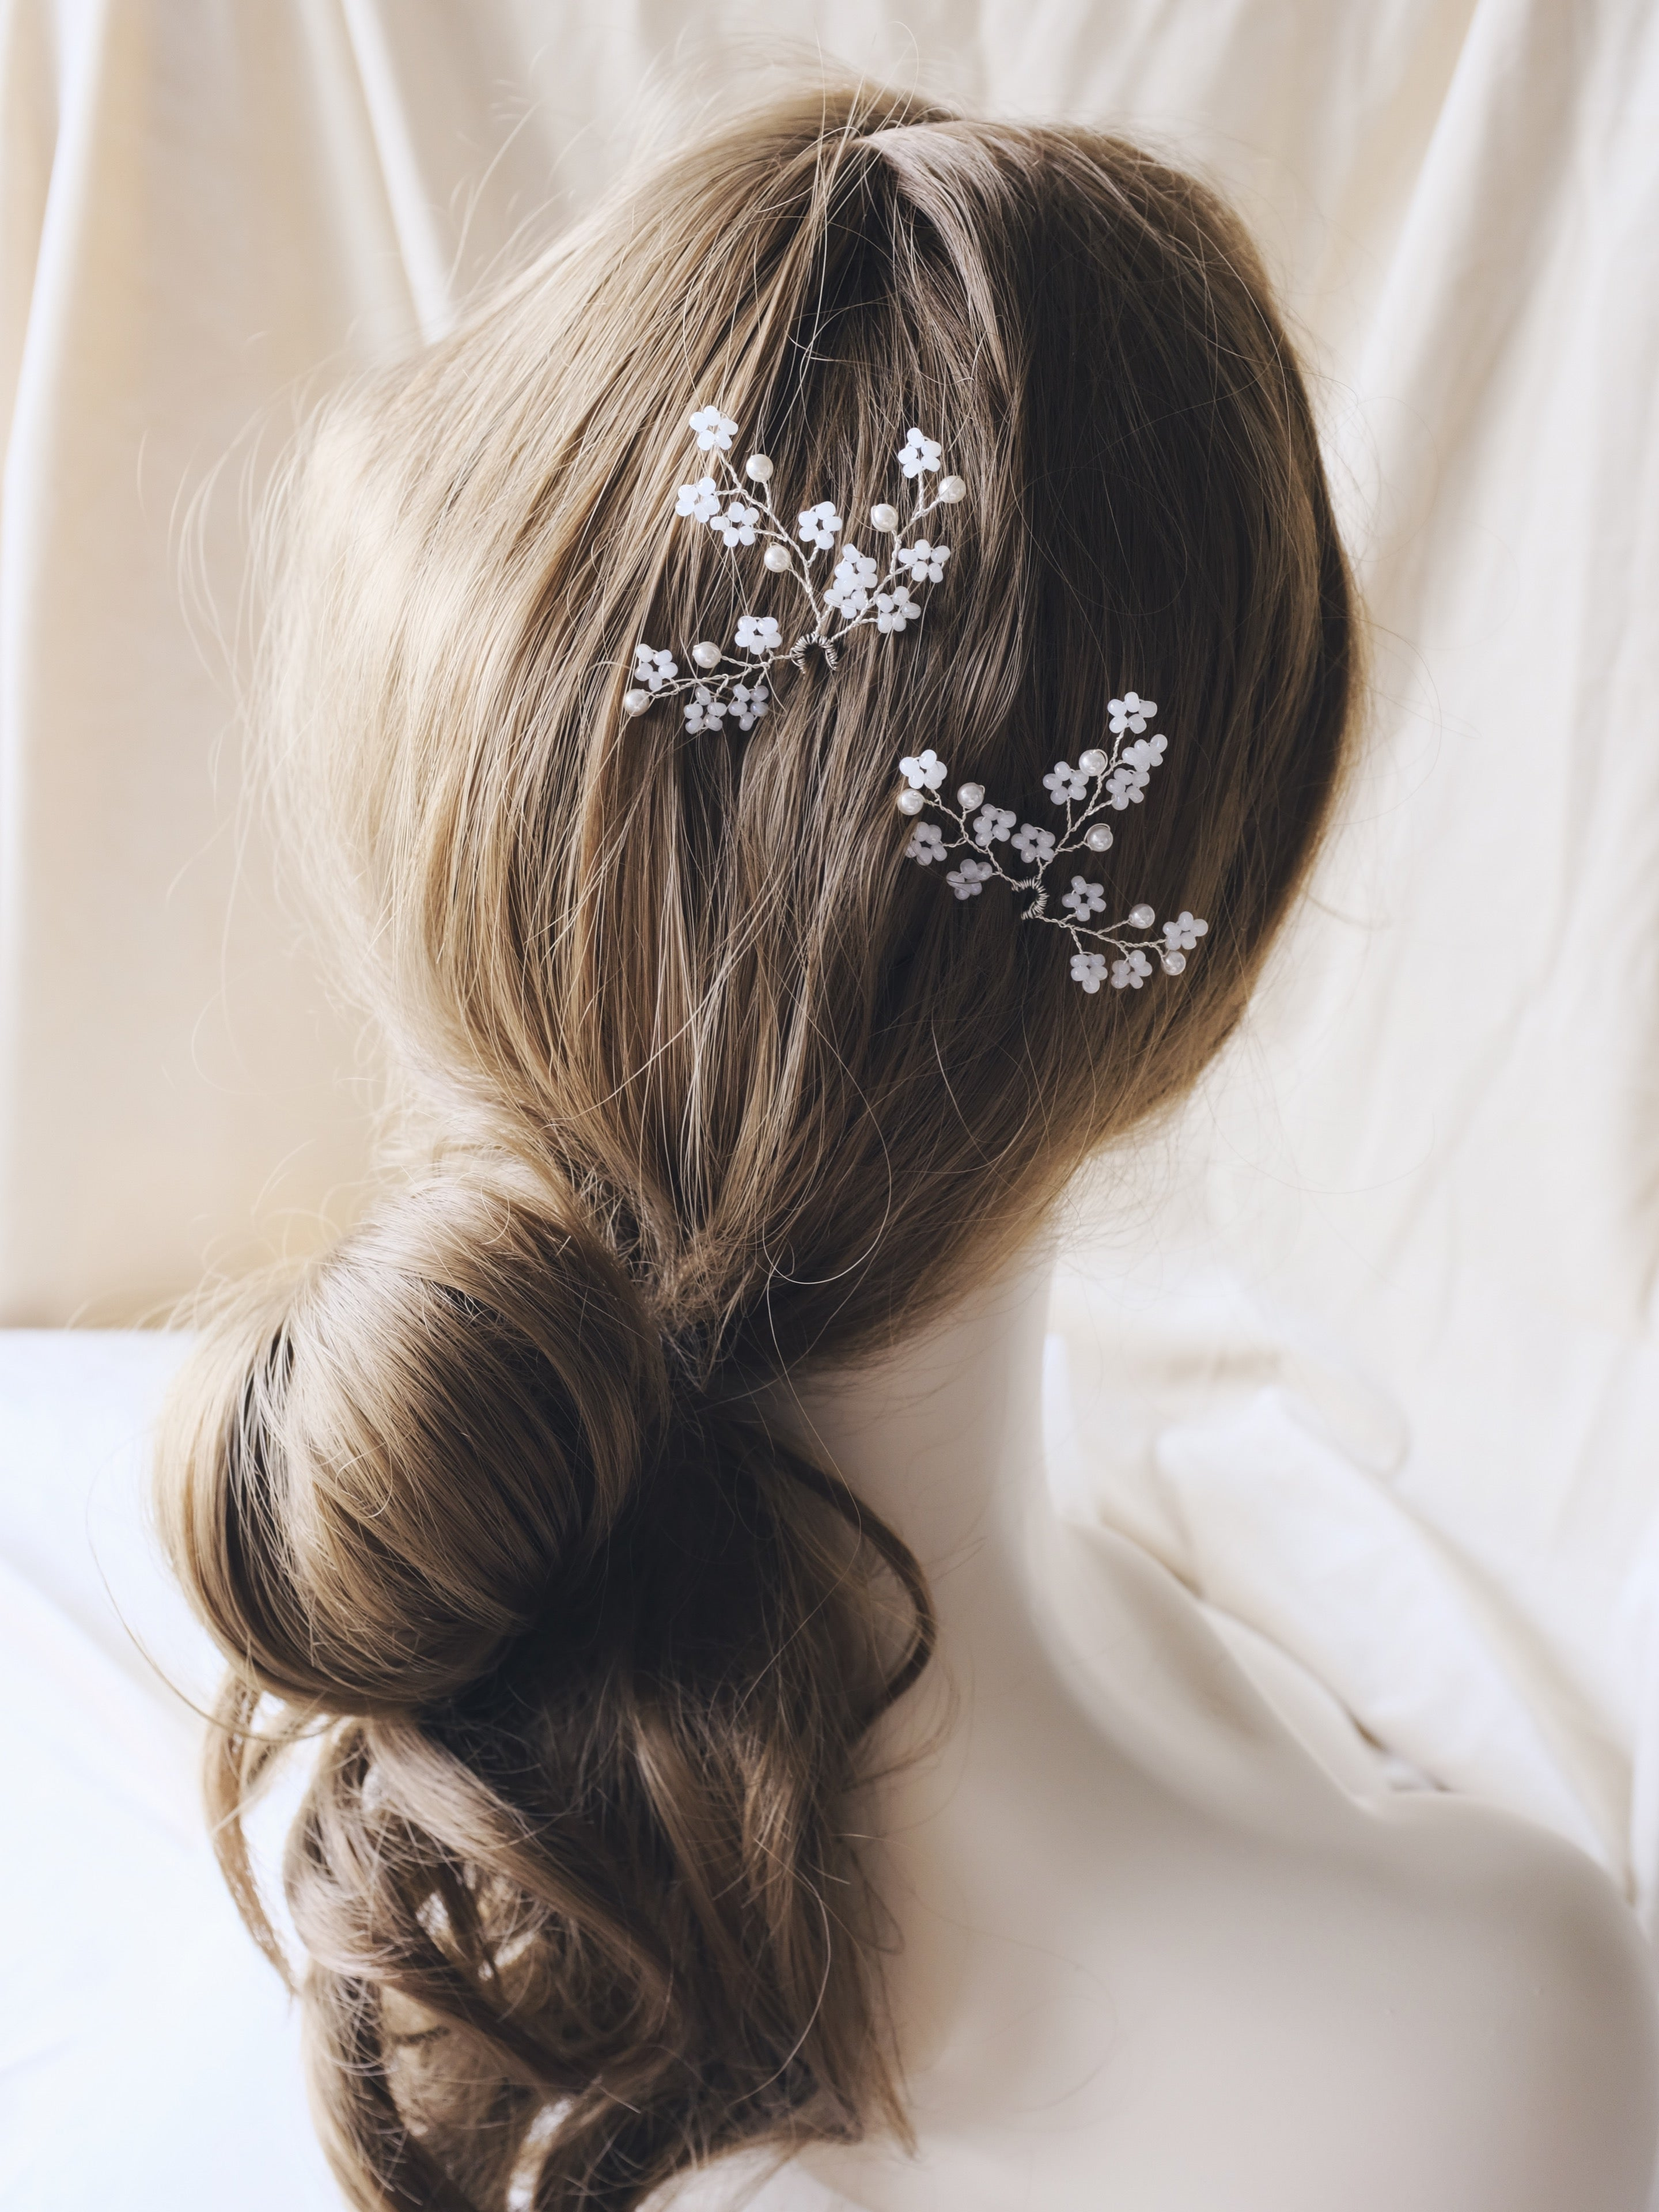 Romantic wedding hairstyle updo Hong Kong bridal hair accessories